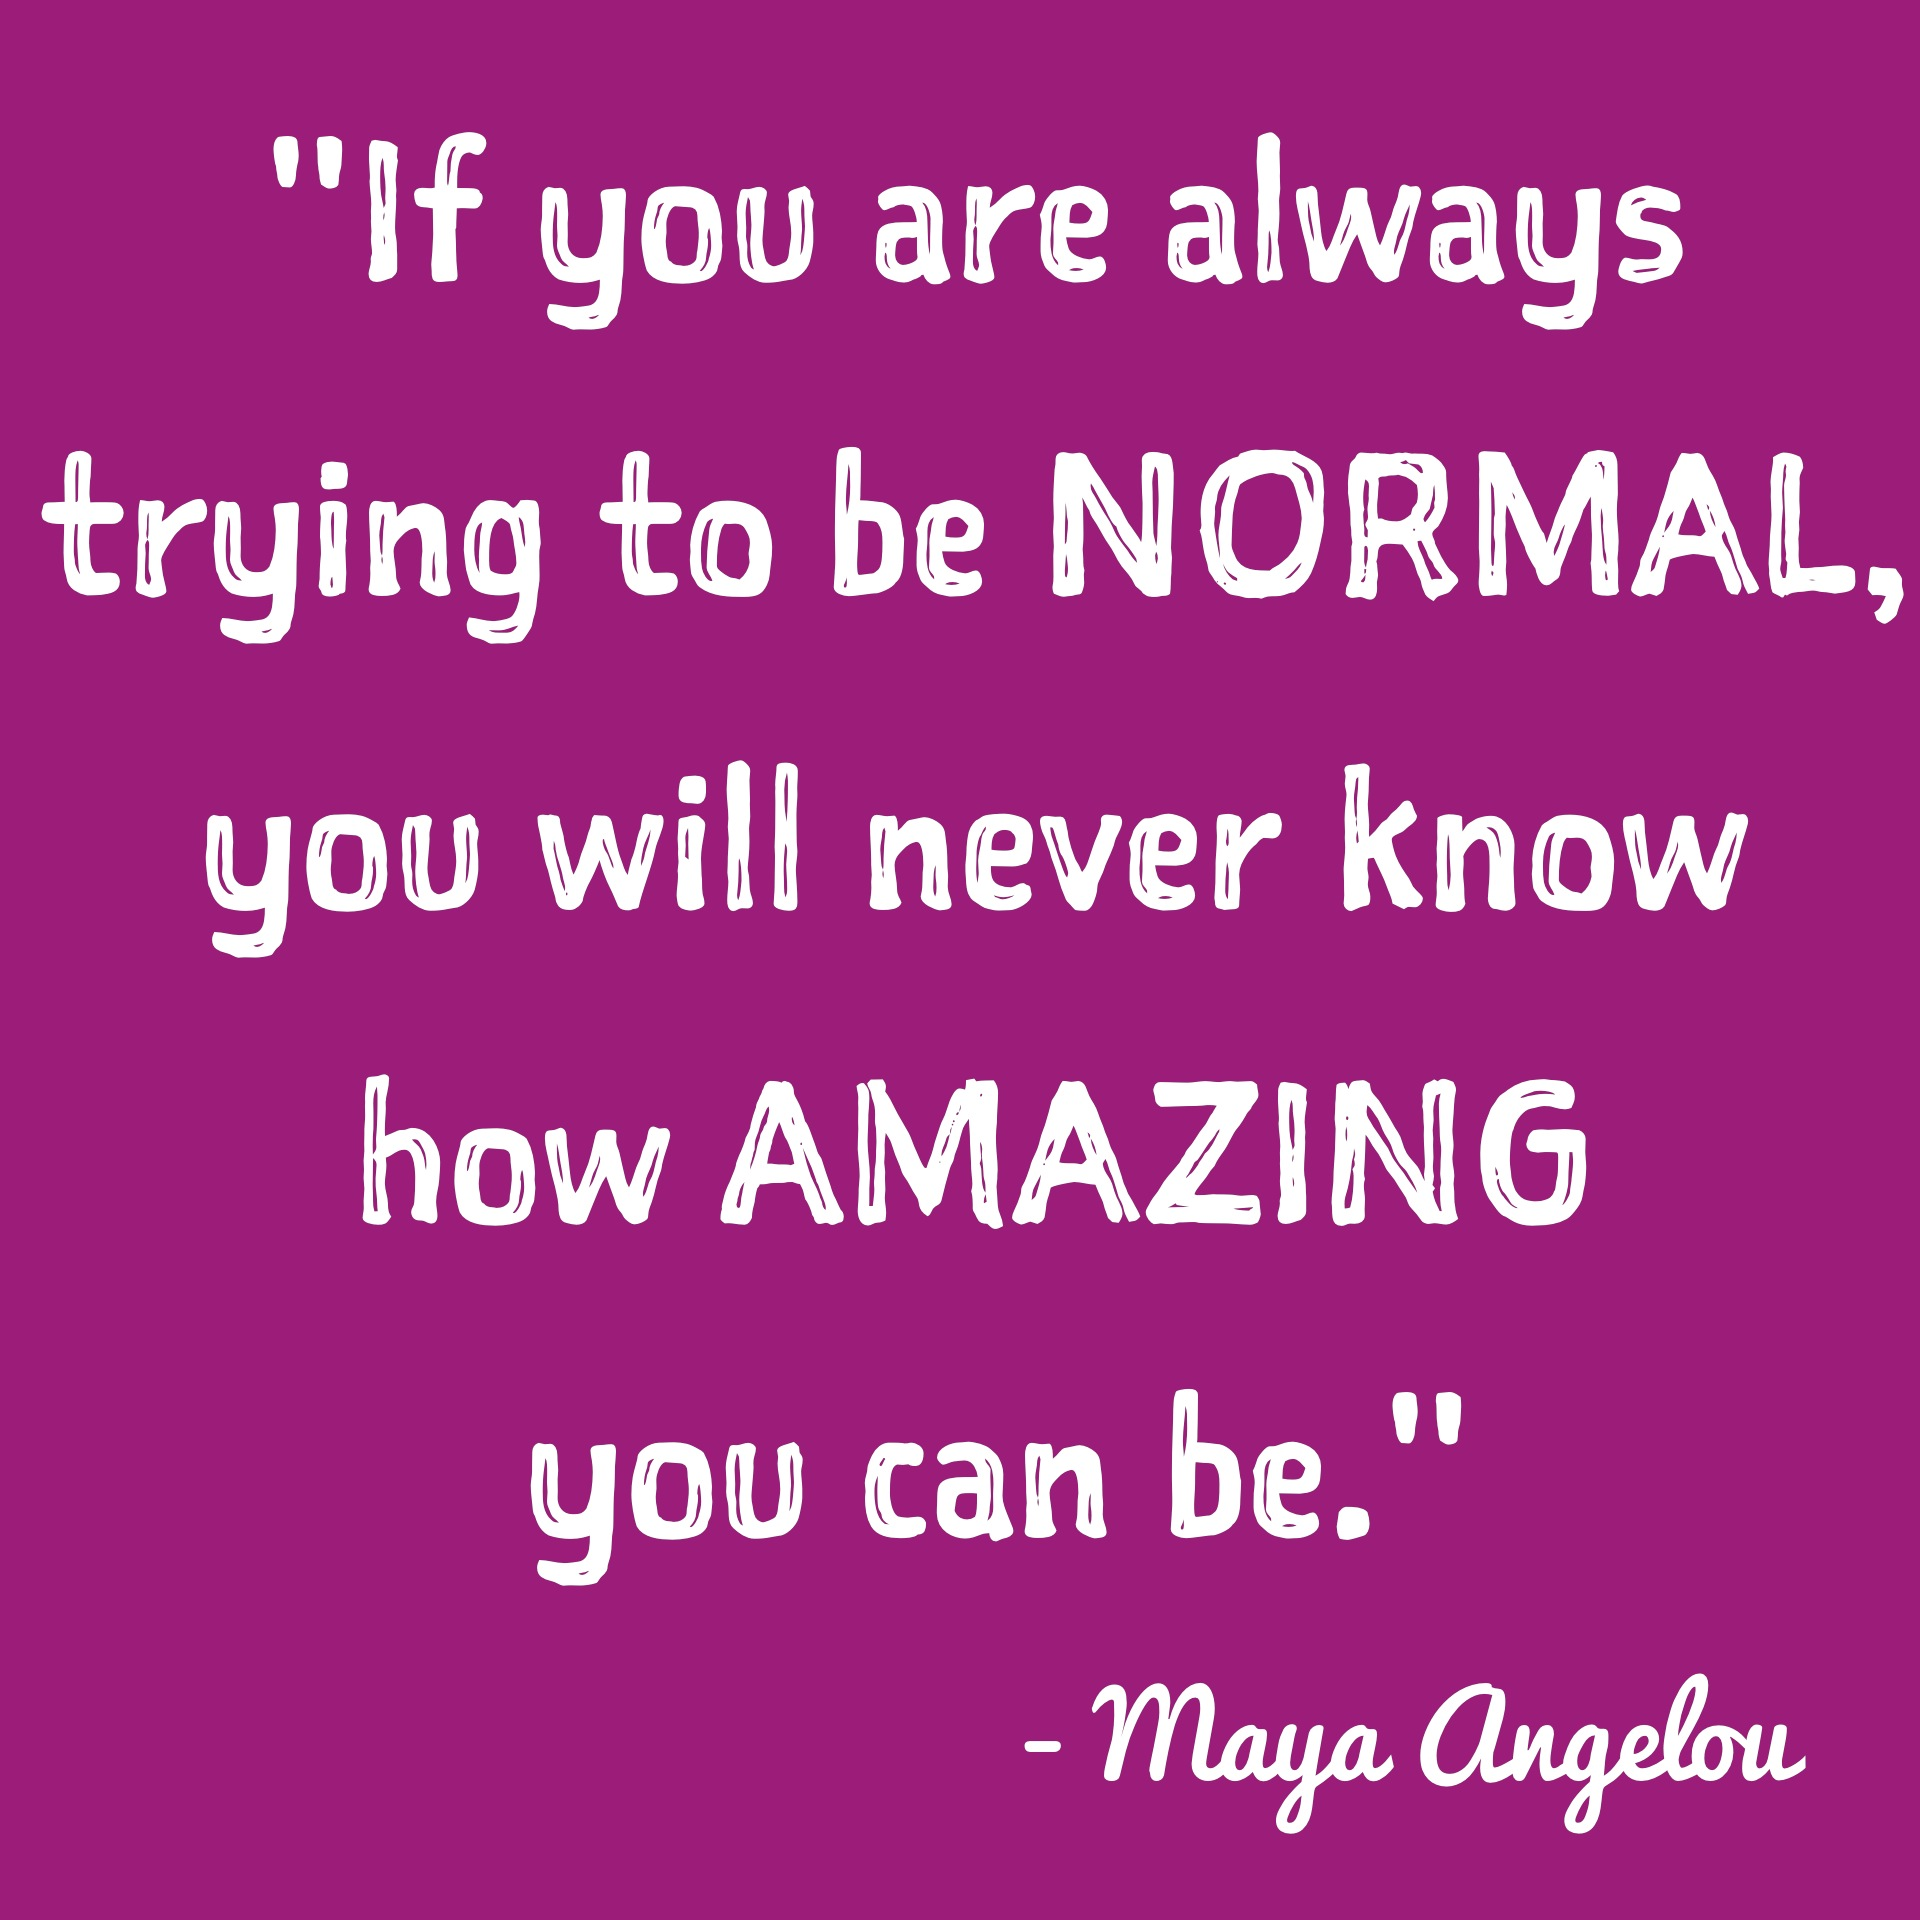 inspirational-quotes-inspiring-quotes-potential-quotes-inner-voice-quotes-if-you-are-always-trying-to-be-normal-you-will-never-know-how-amazing-you-can-be.jpg (1920×1920)